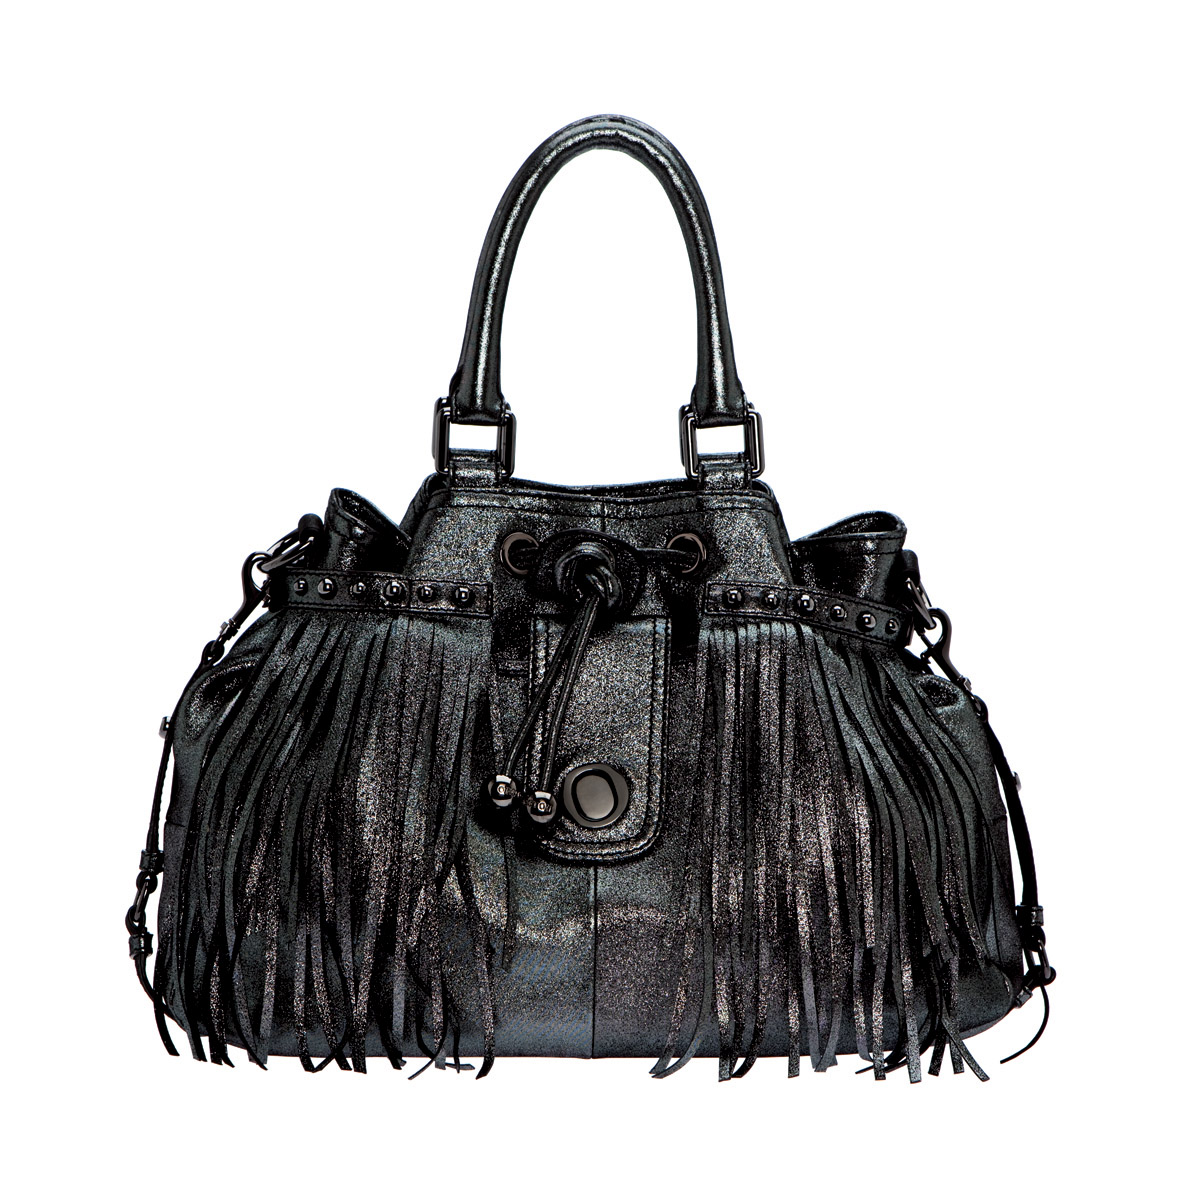 e39899637b6 Crafted using soft metallic leather, the tote is available in either golden  panna or the gunmetal smog. The bag retails for HK$7,200.